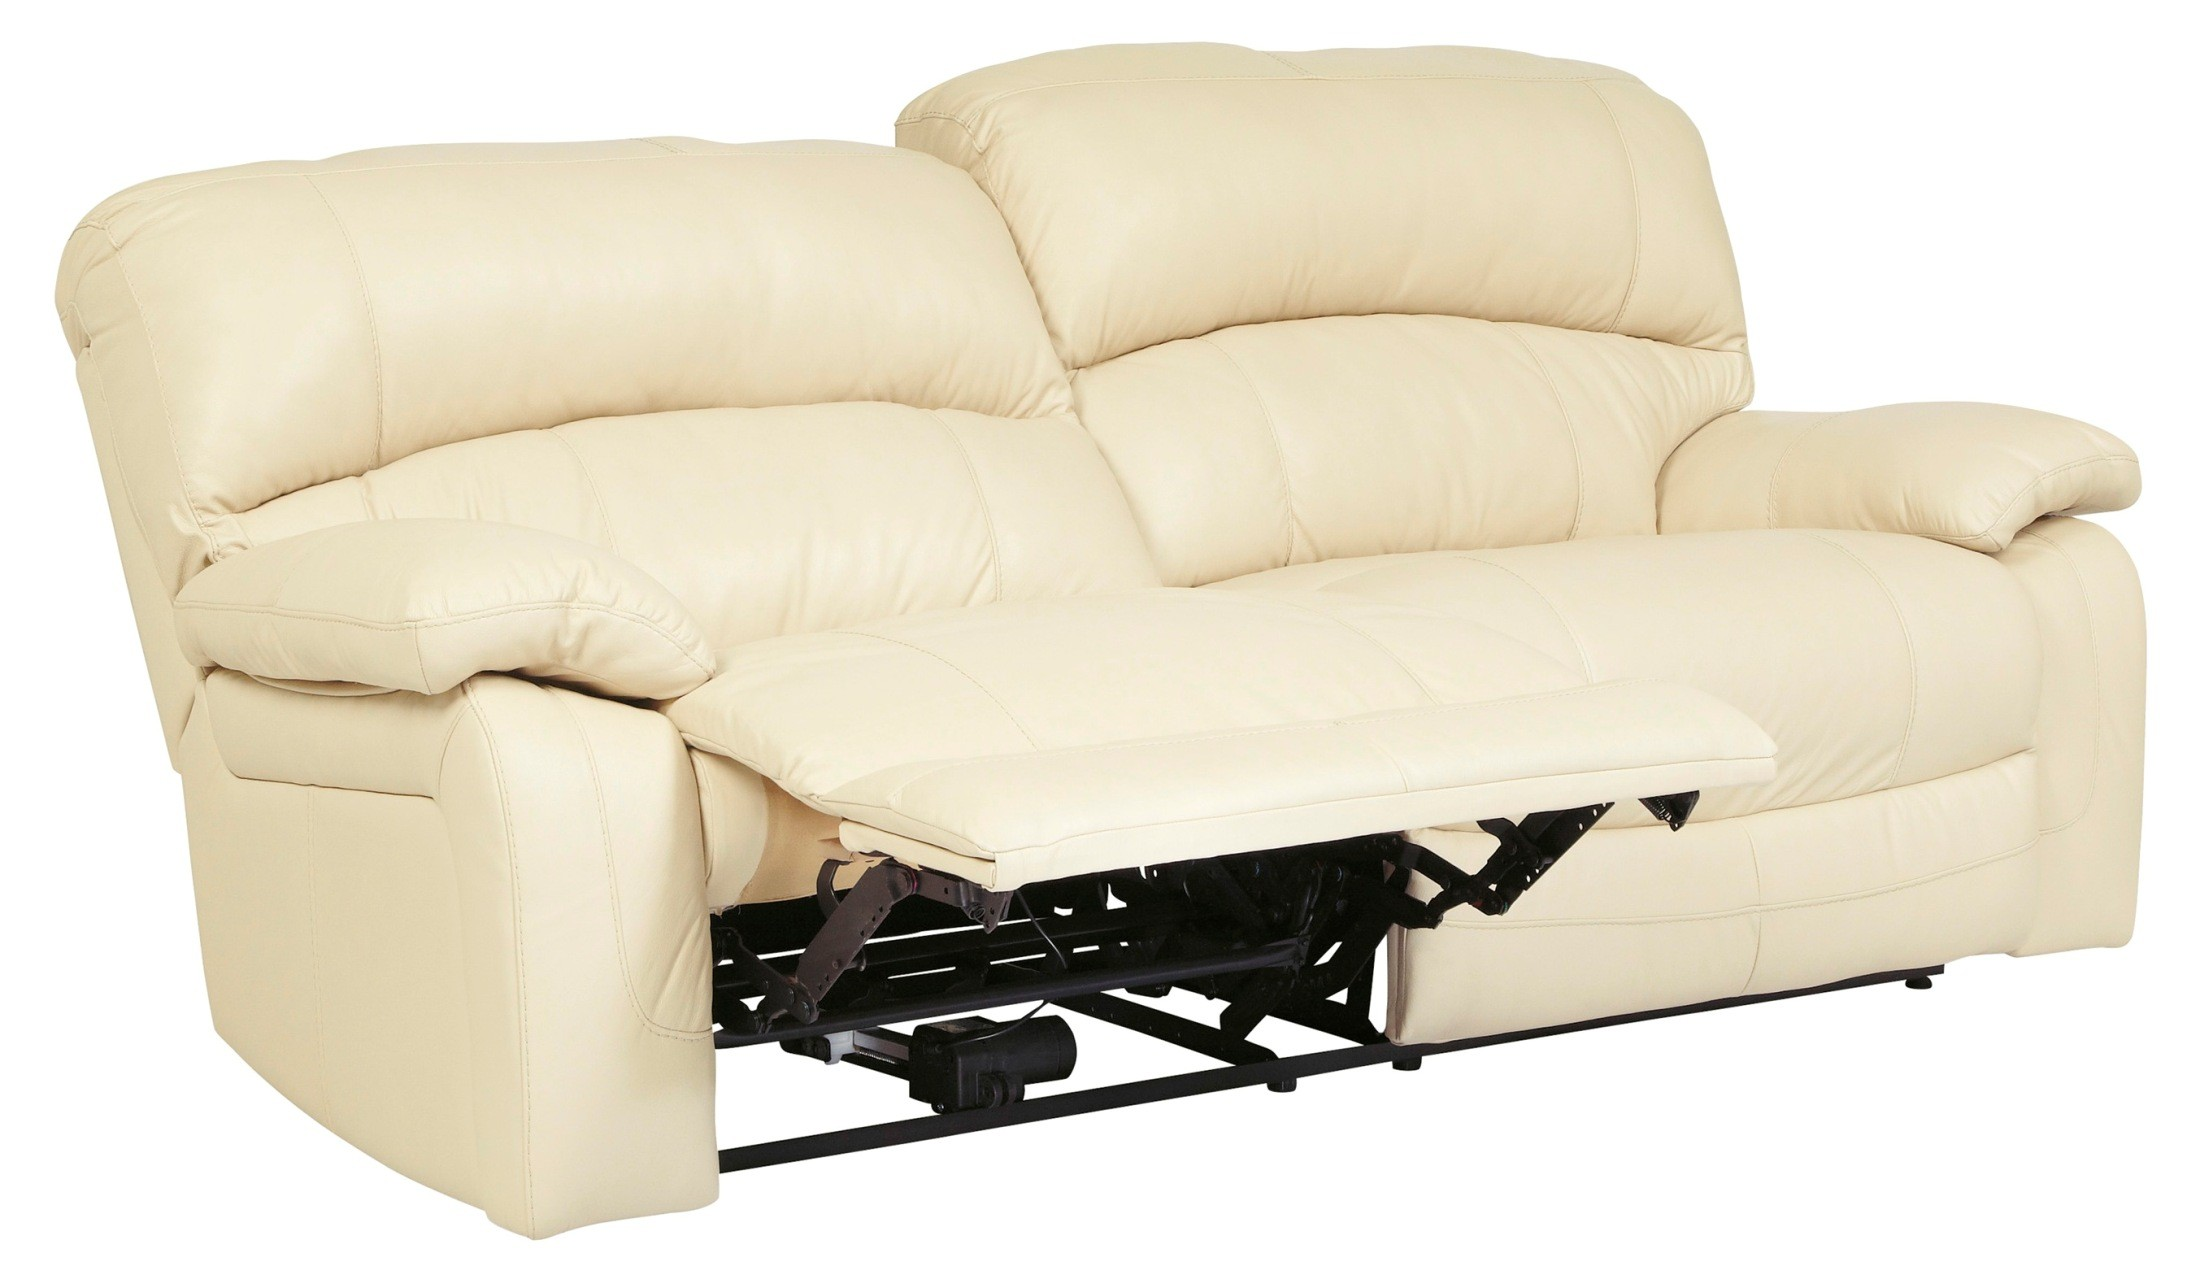 Damacio cream 2 seat power reclining sofa from ashley Power reclining sofas and loveseats